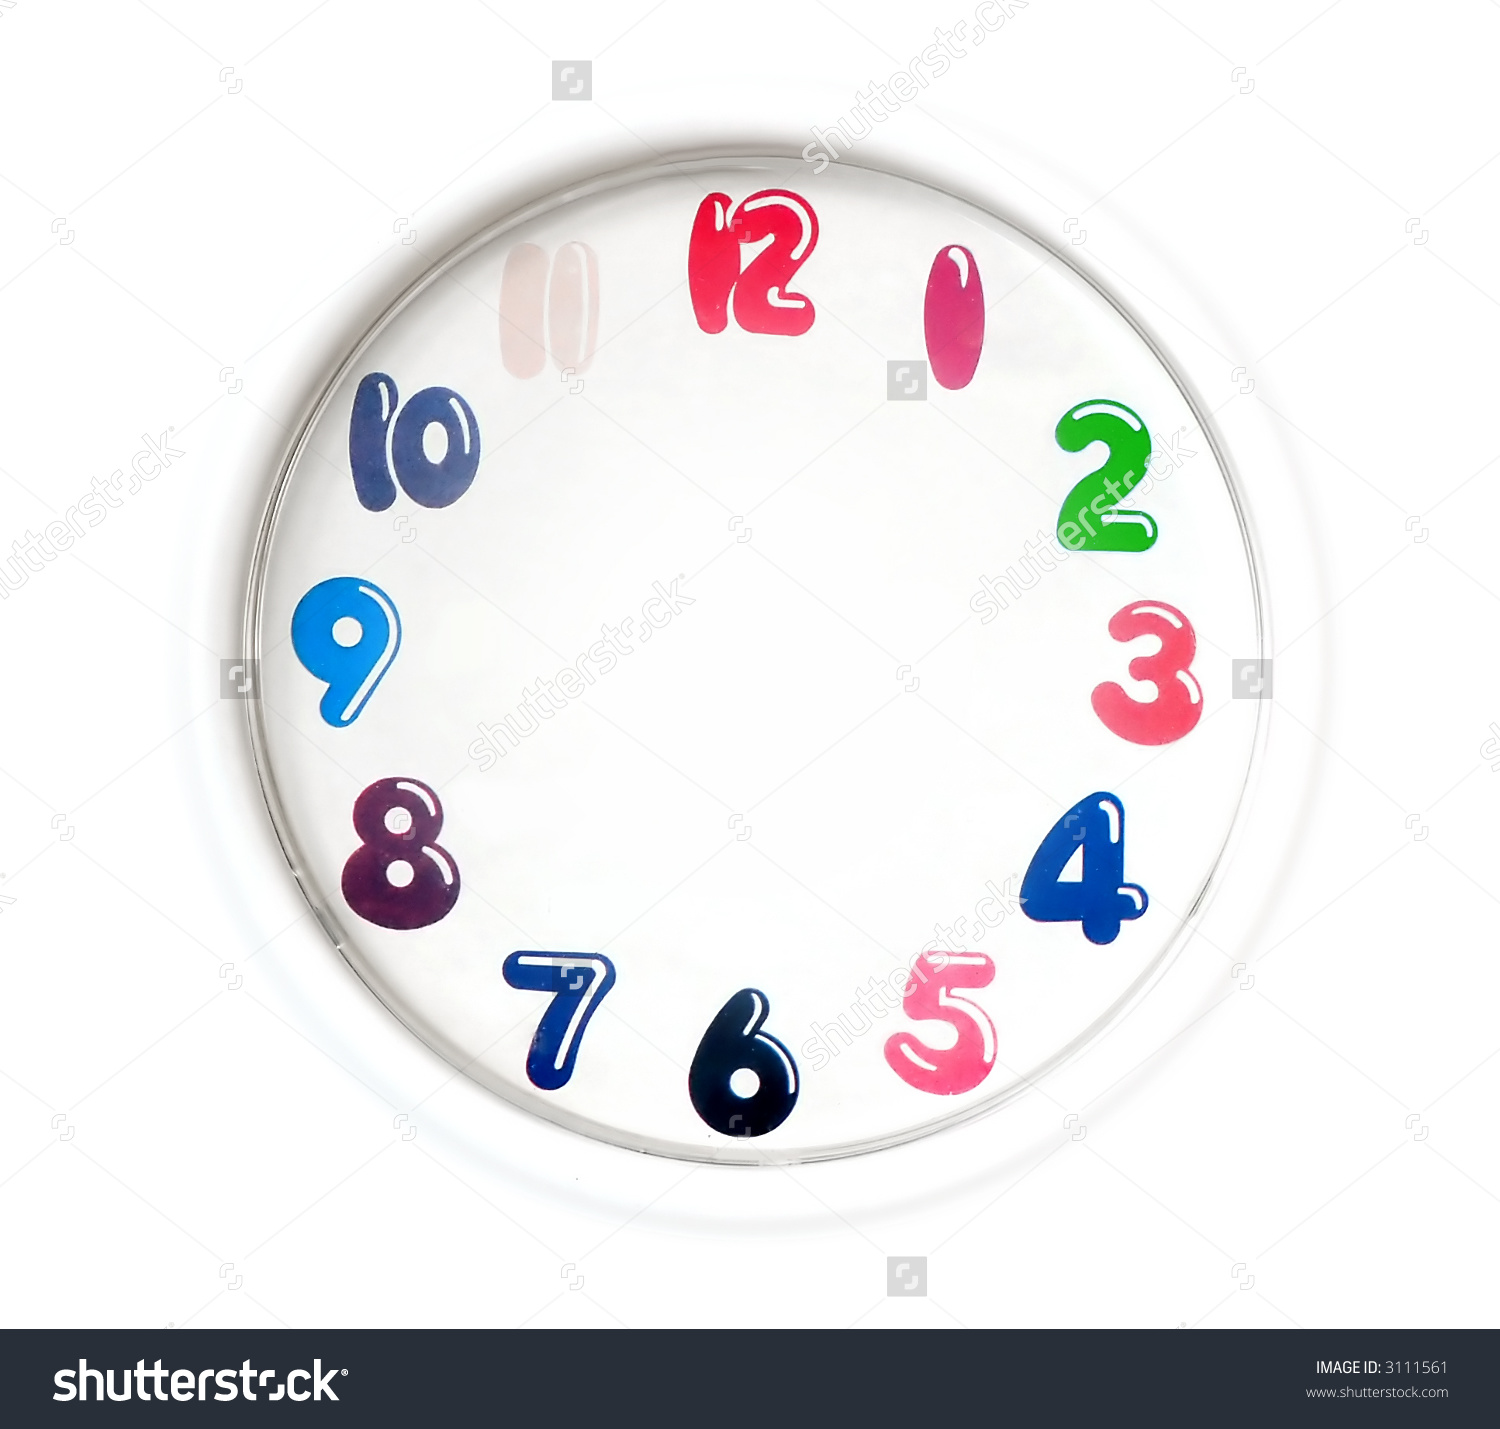 Clock clipart with no hands. Colorful clipartfox save to